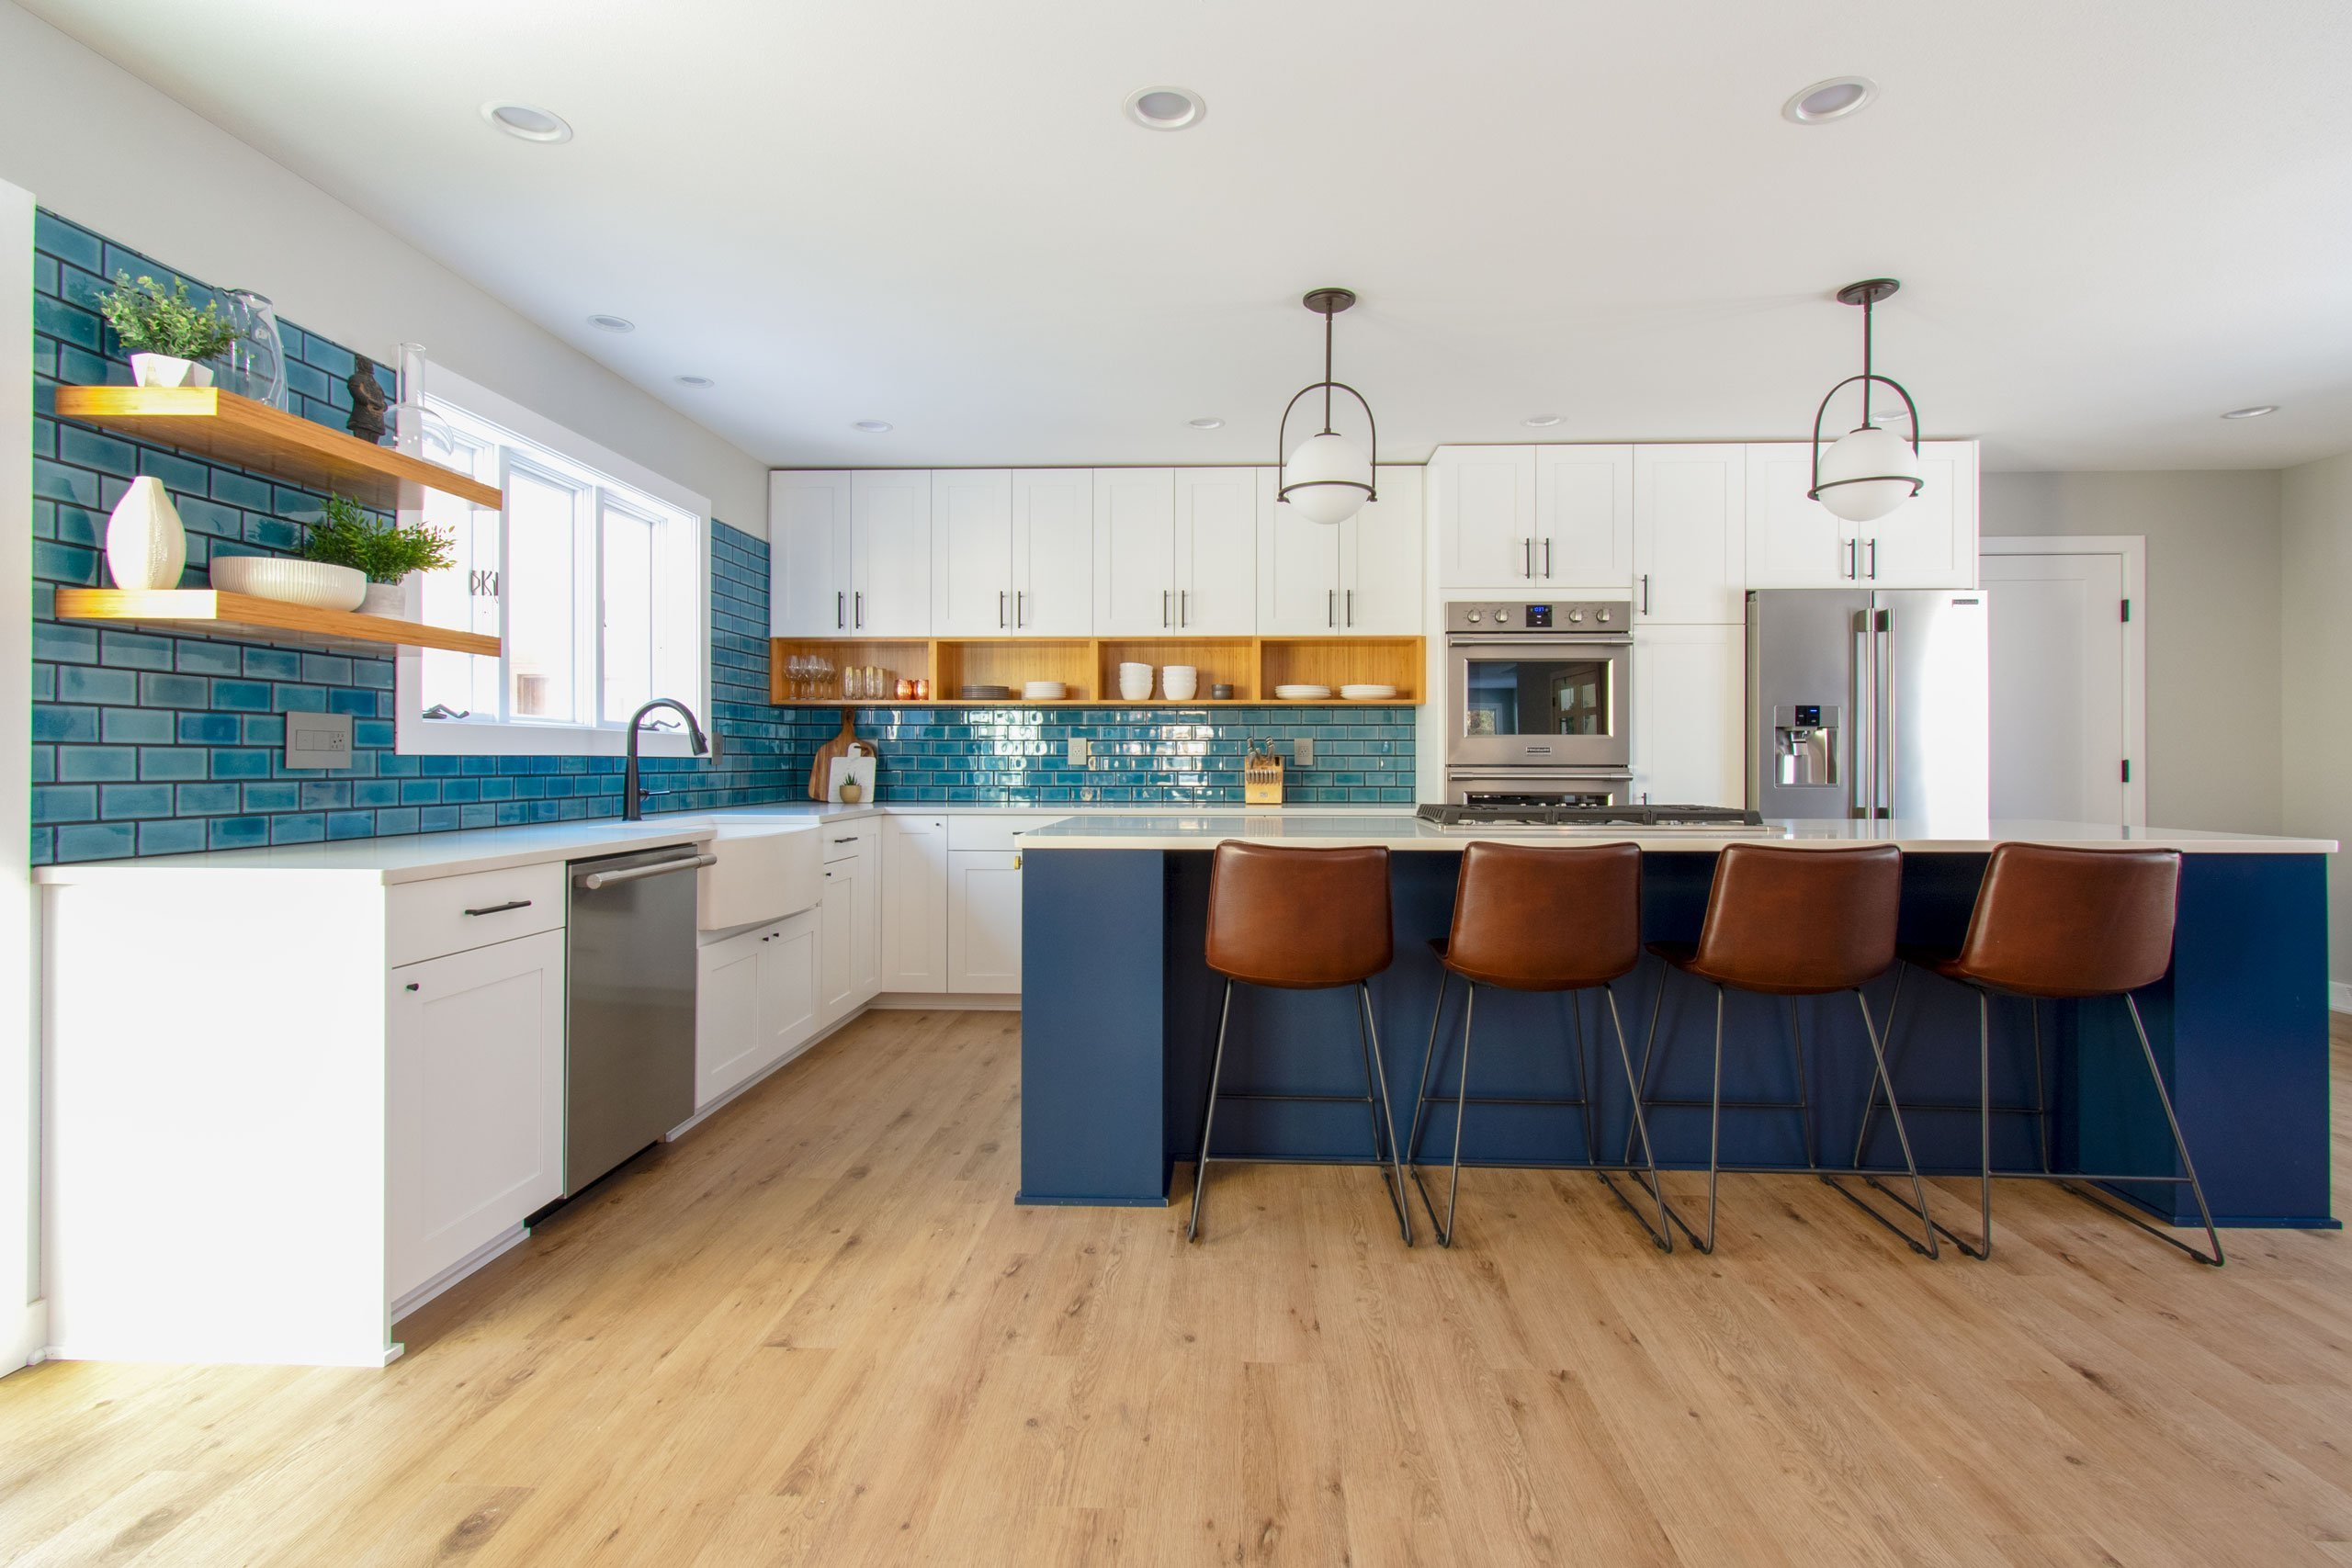 Contemporary white kitchen with blue backsplash and navy island